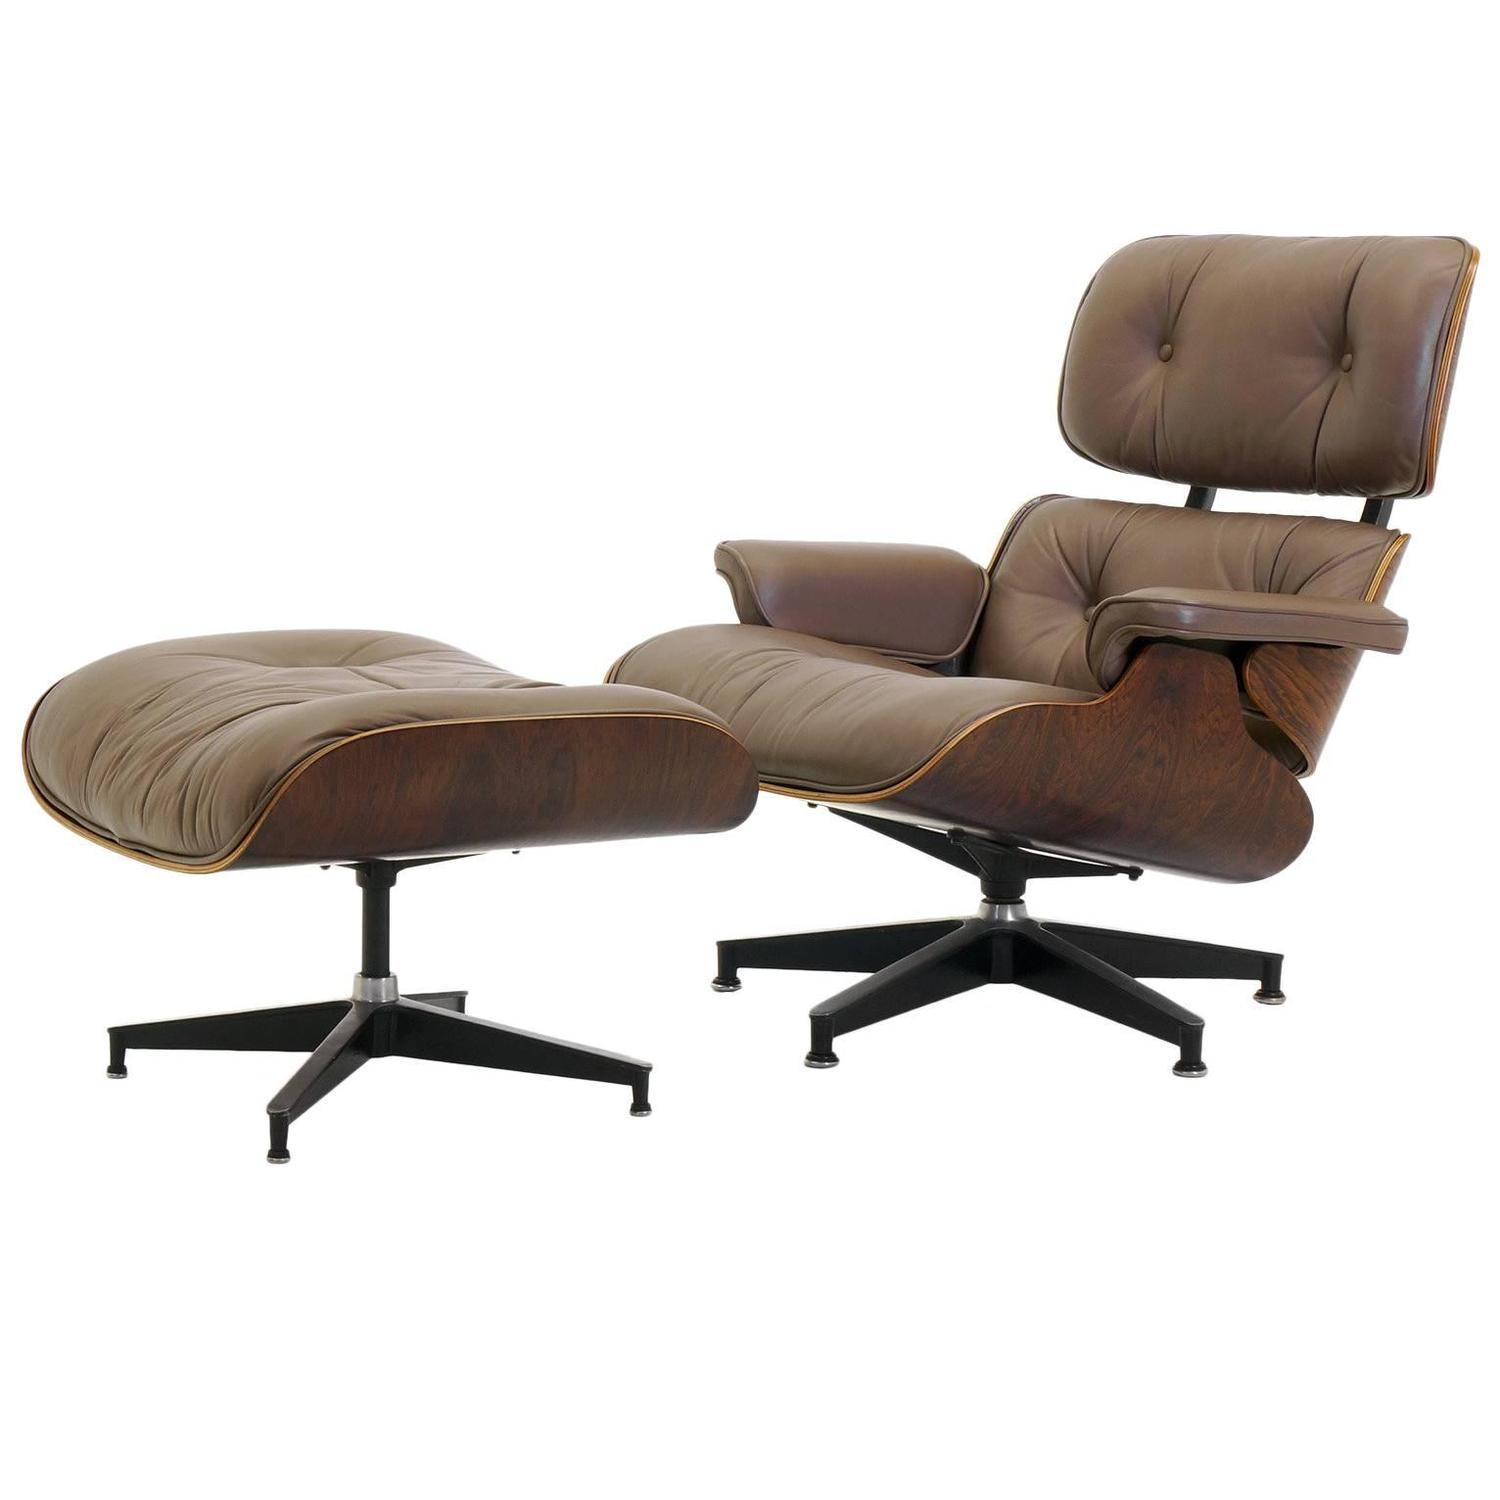 Miraculous Special Order Original Khaki Leather And Rosewood Eames Dailytribune Chair Design For Home Dailytribuneorg